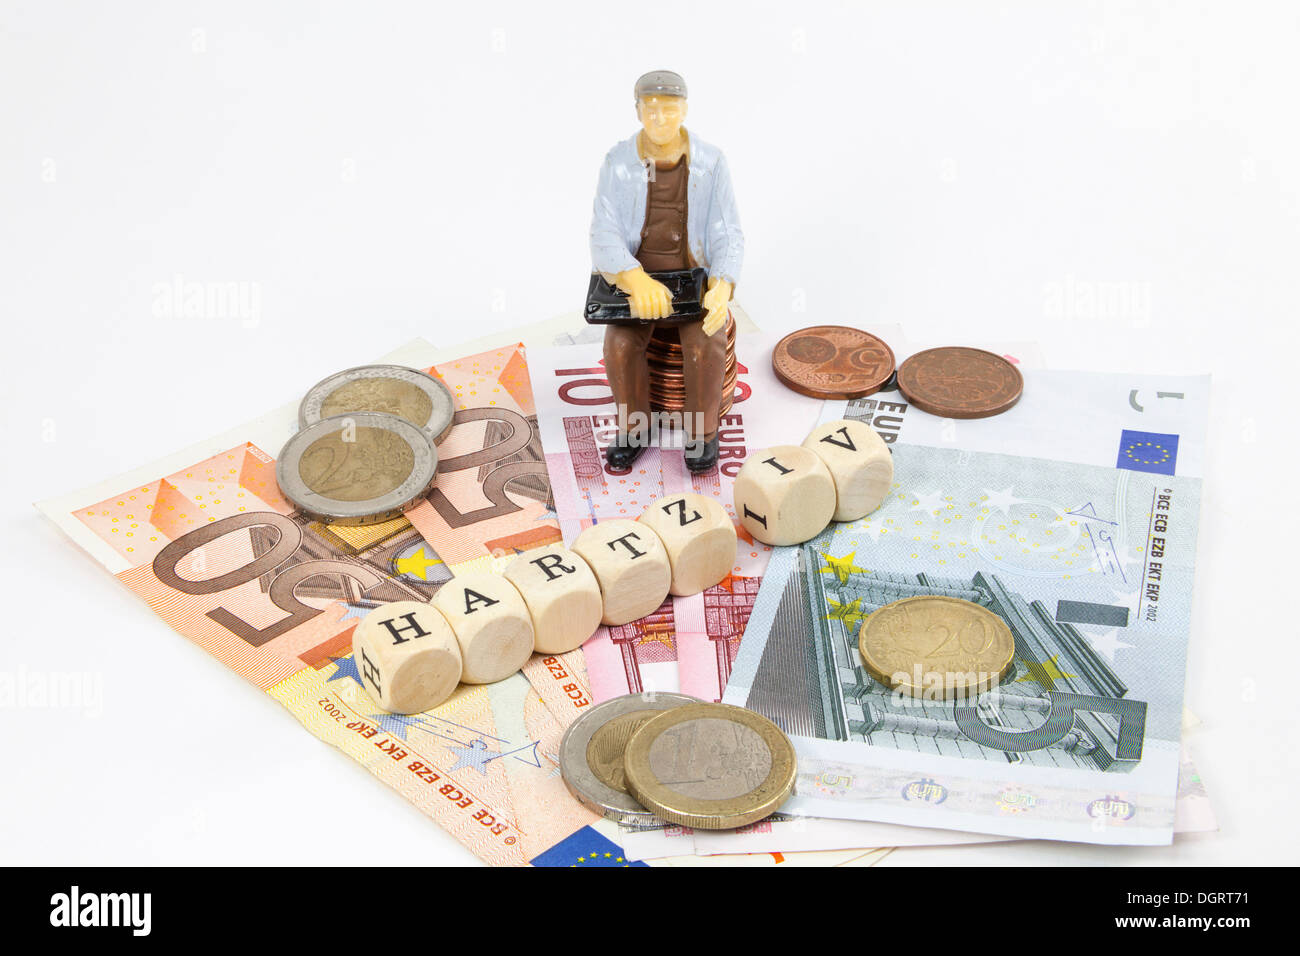 Miniature figure of a worker, Euro banknotes, letter cubes forming the word 'Hartz IV' German income support subsidy, symbolic - Stock Image